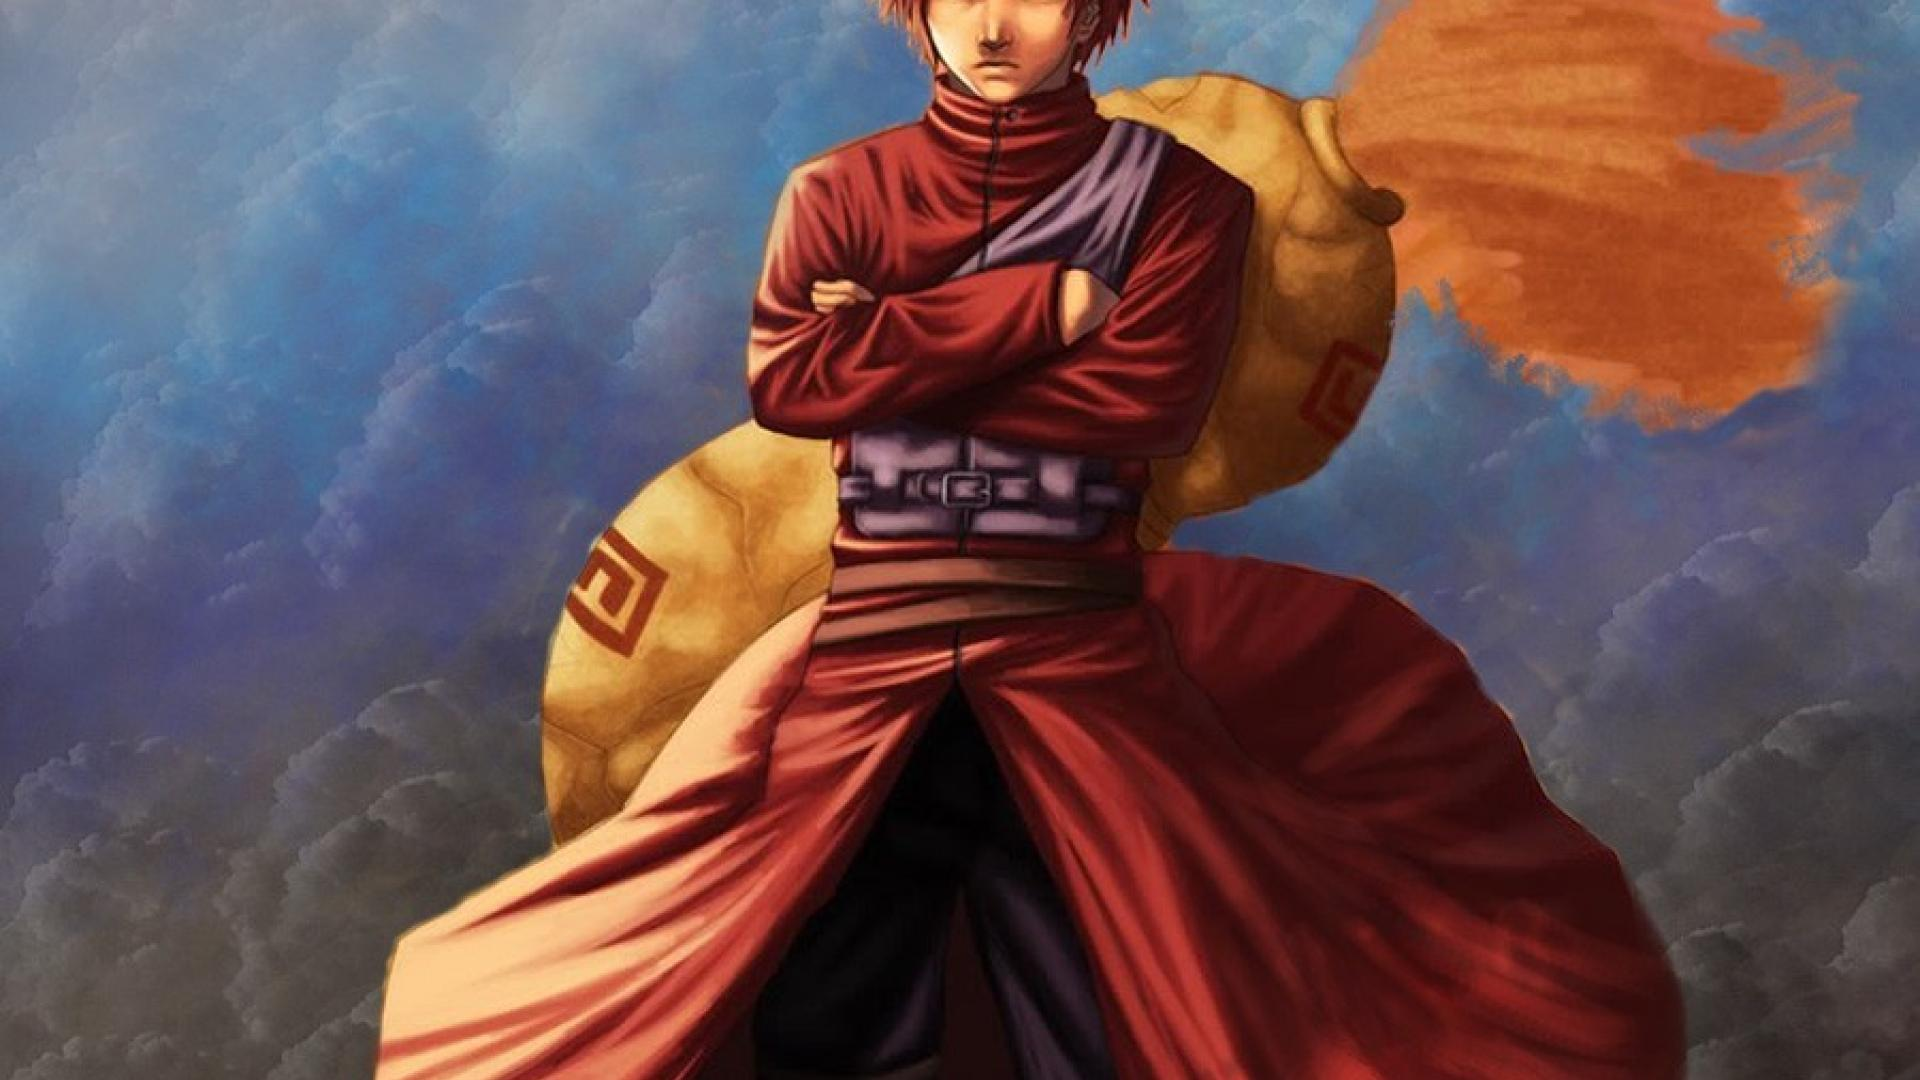 Free Download 1920x1080 Gaara Sand Attack 966726 1920x1080 For